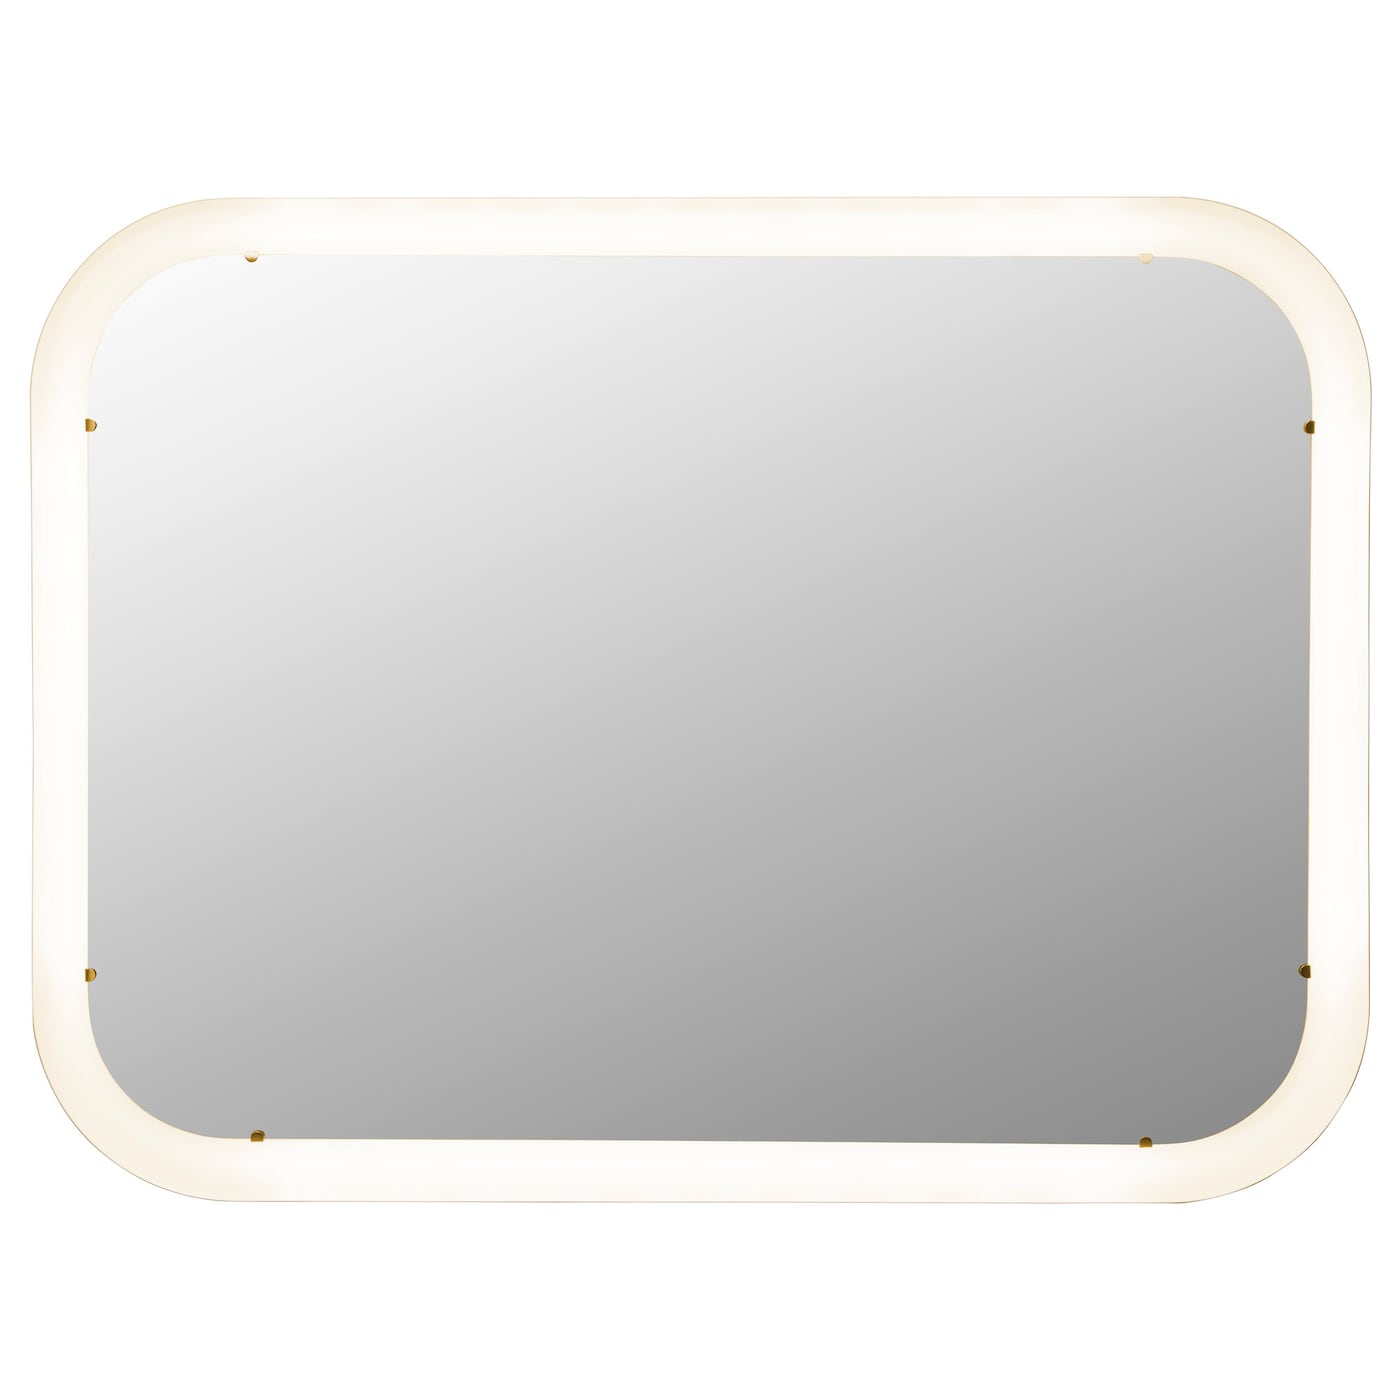 Storjorm mirror with integrated lighting white 80x60 cm ikea for Miroir 90 x 170